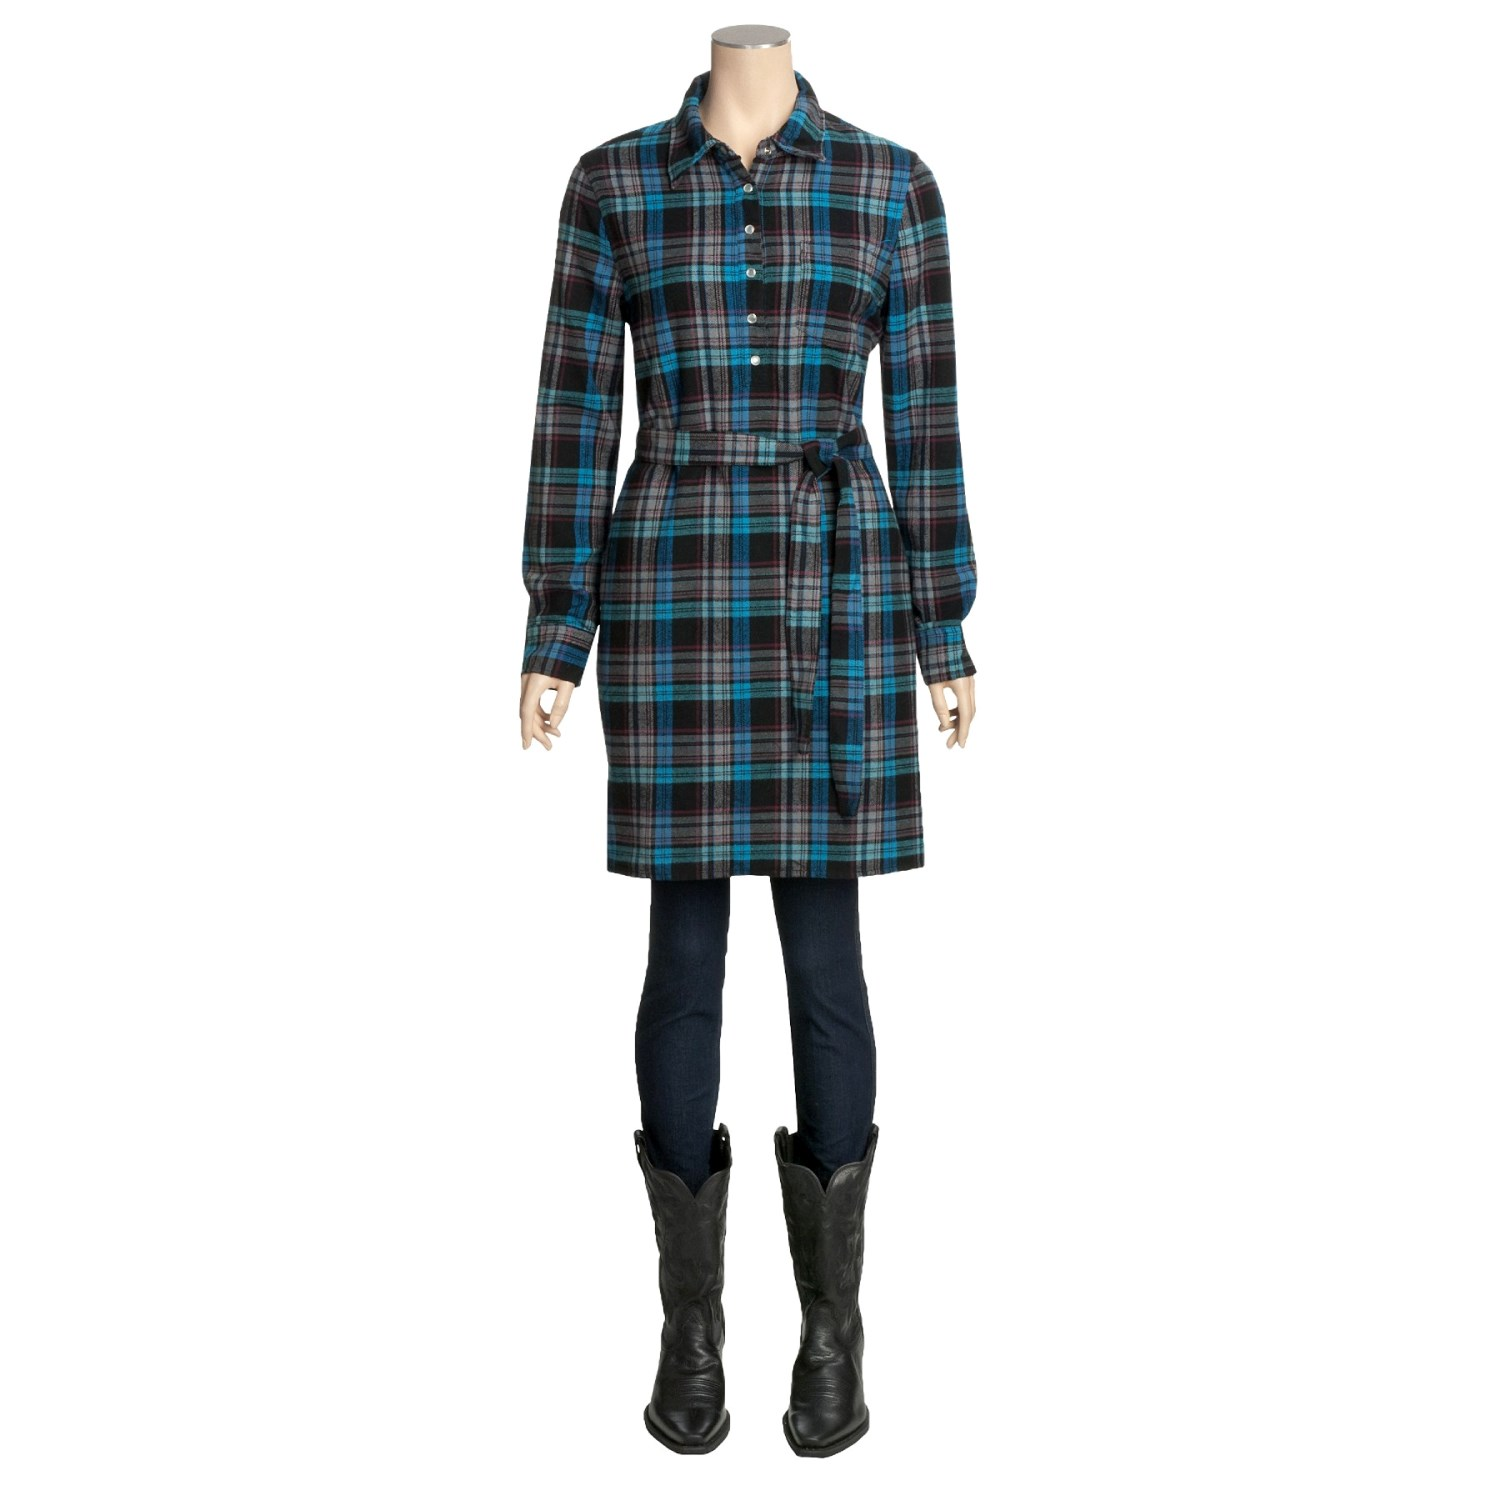 Model Women39s Plus Size Navy Plaid Shirt Dress By MuddPuddlesandSuch